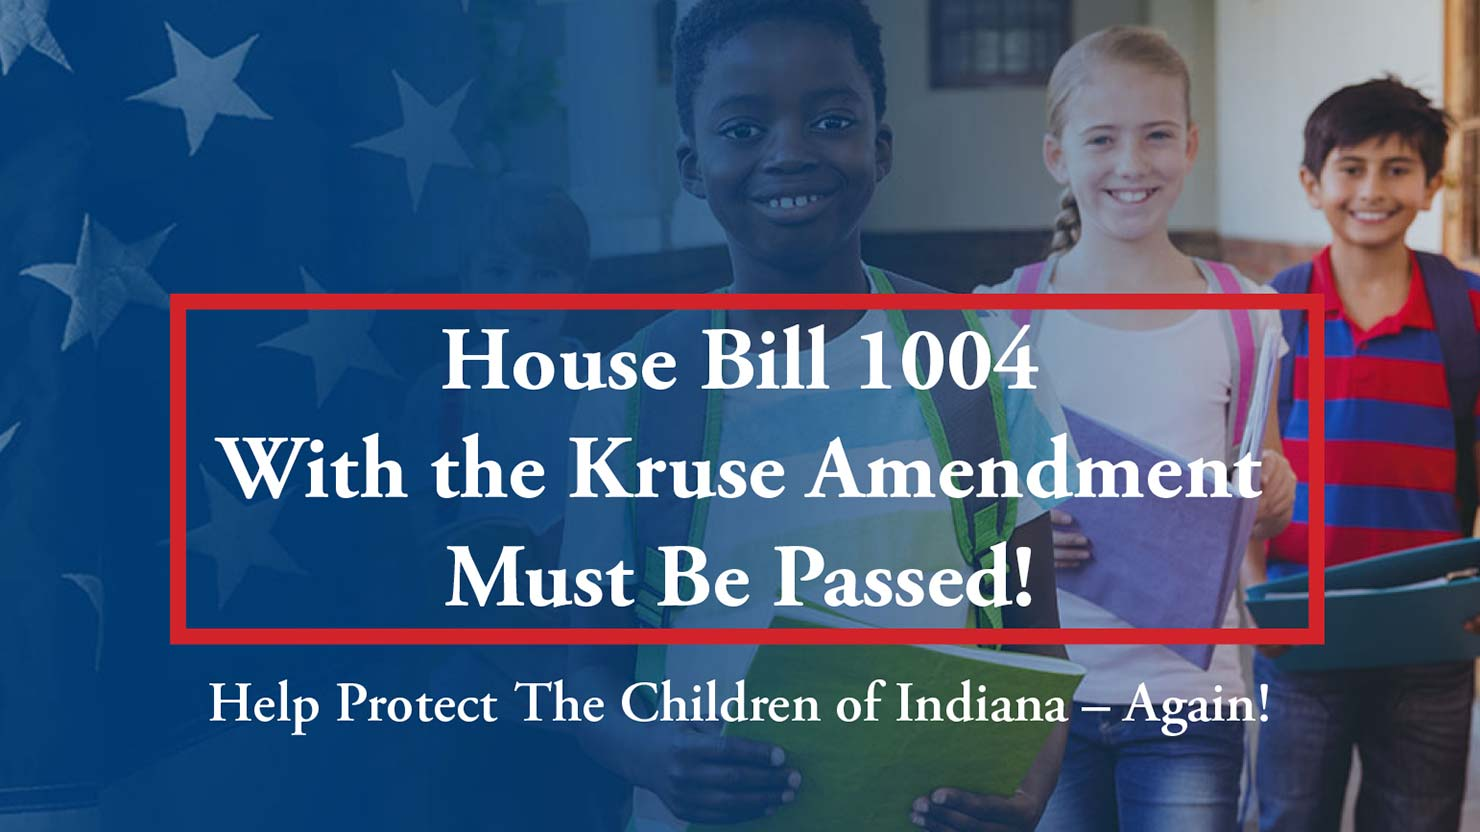 House Bill 1004 With the Kruse Amendment Must Be Passed! Help Protect The Children of Indiana – Again!